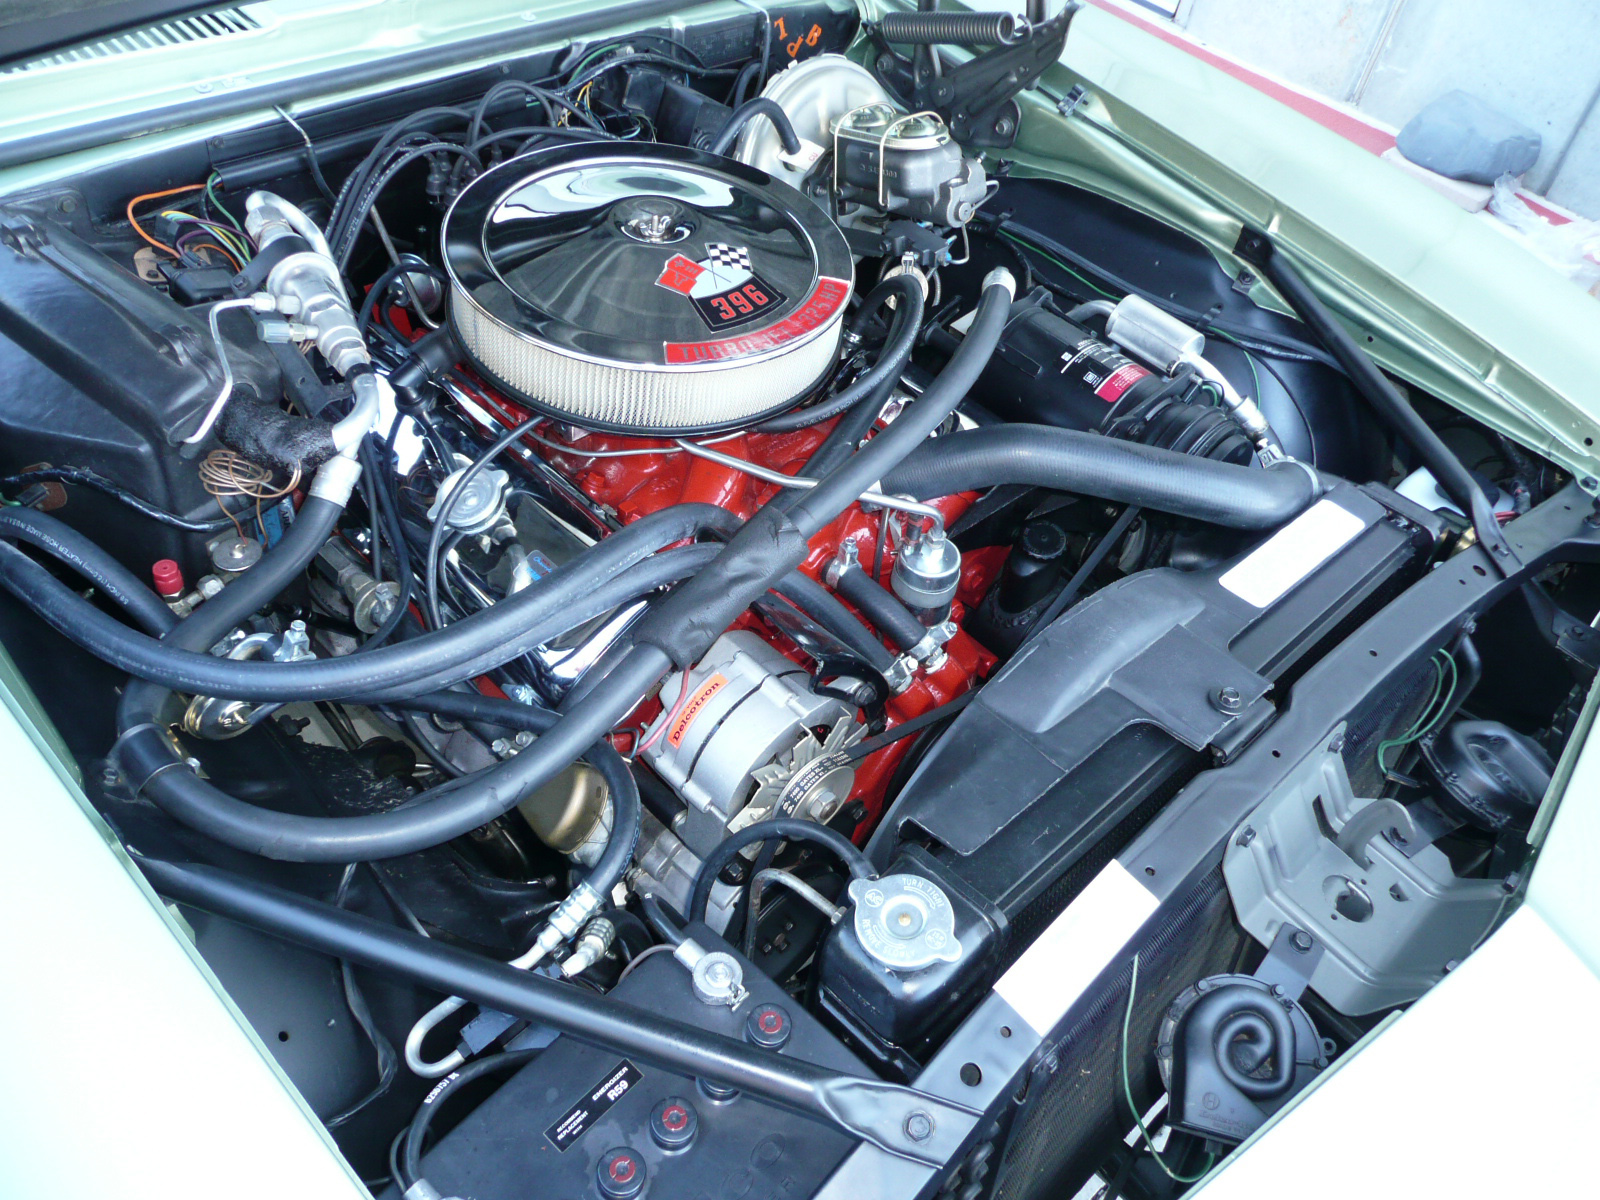 1969 CHEVROLET CAMARO SS COUPE - Engine - 80979